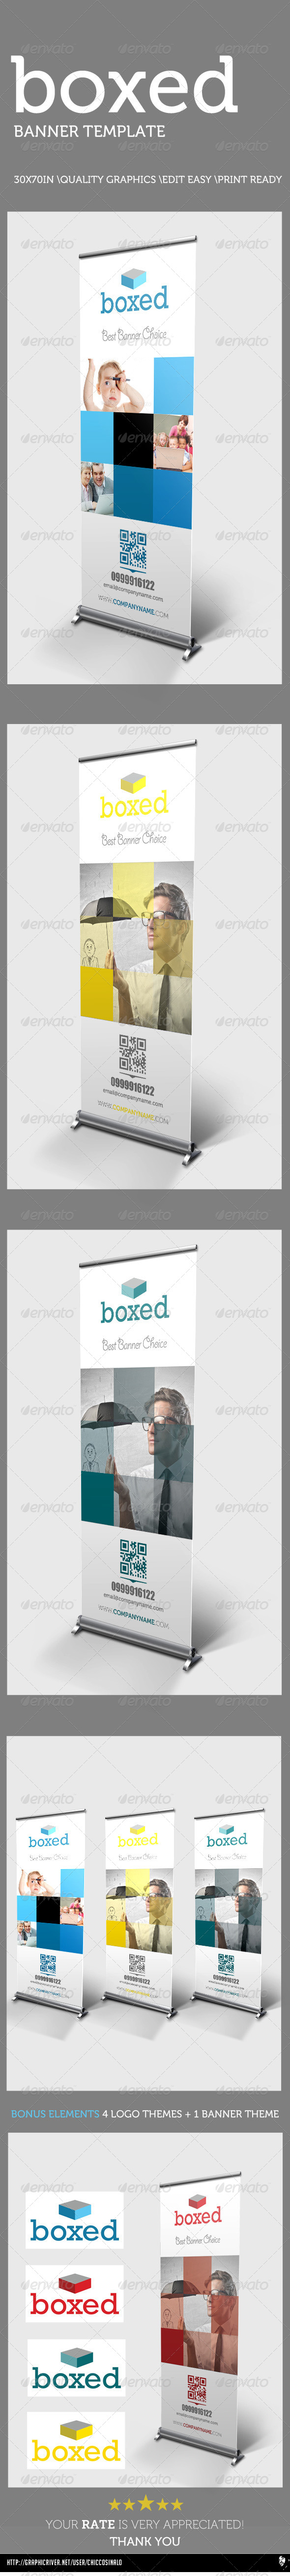 Boxed Banner Template - Signage Print Templates